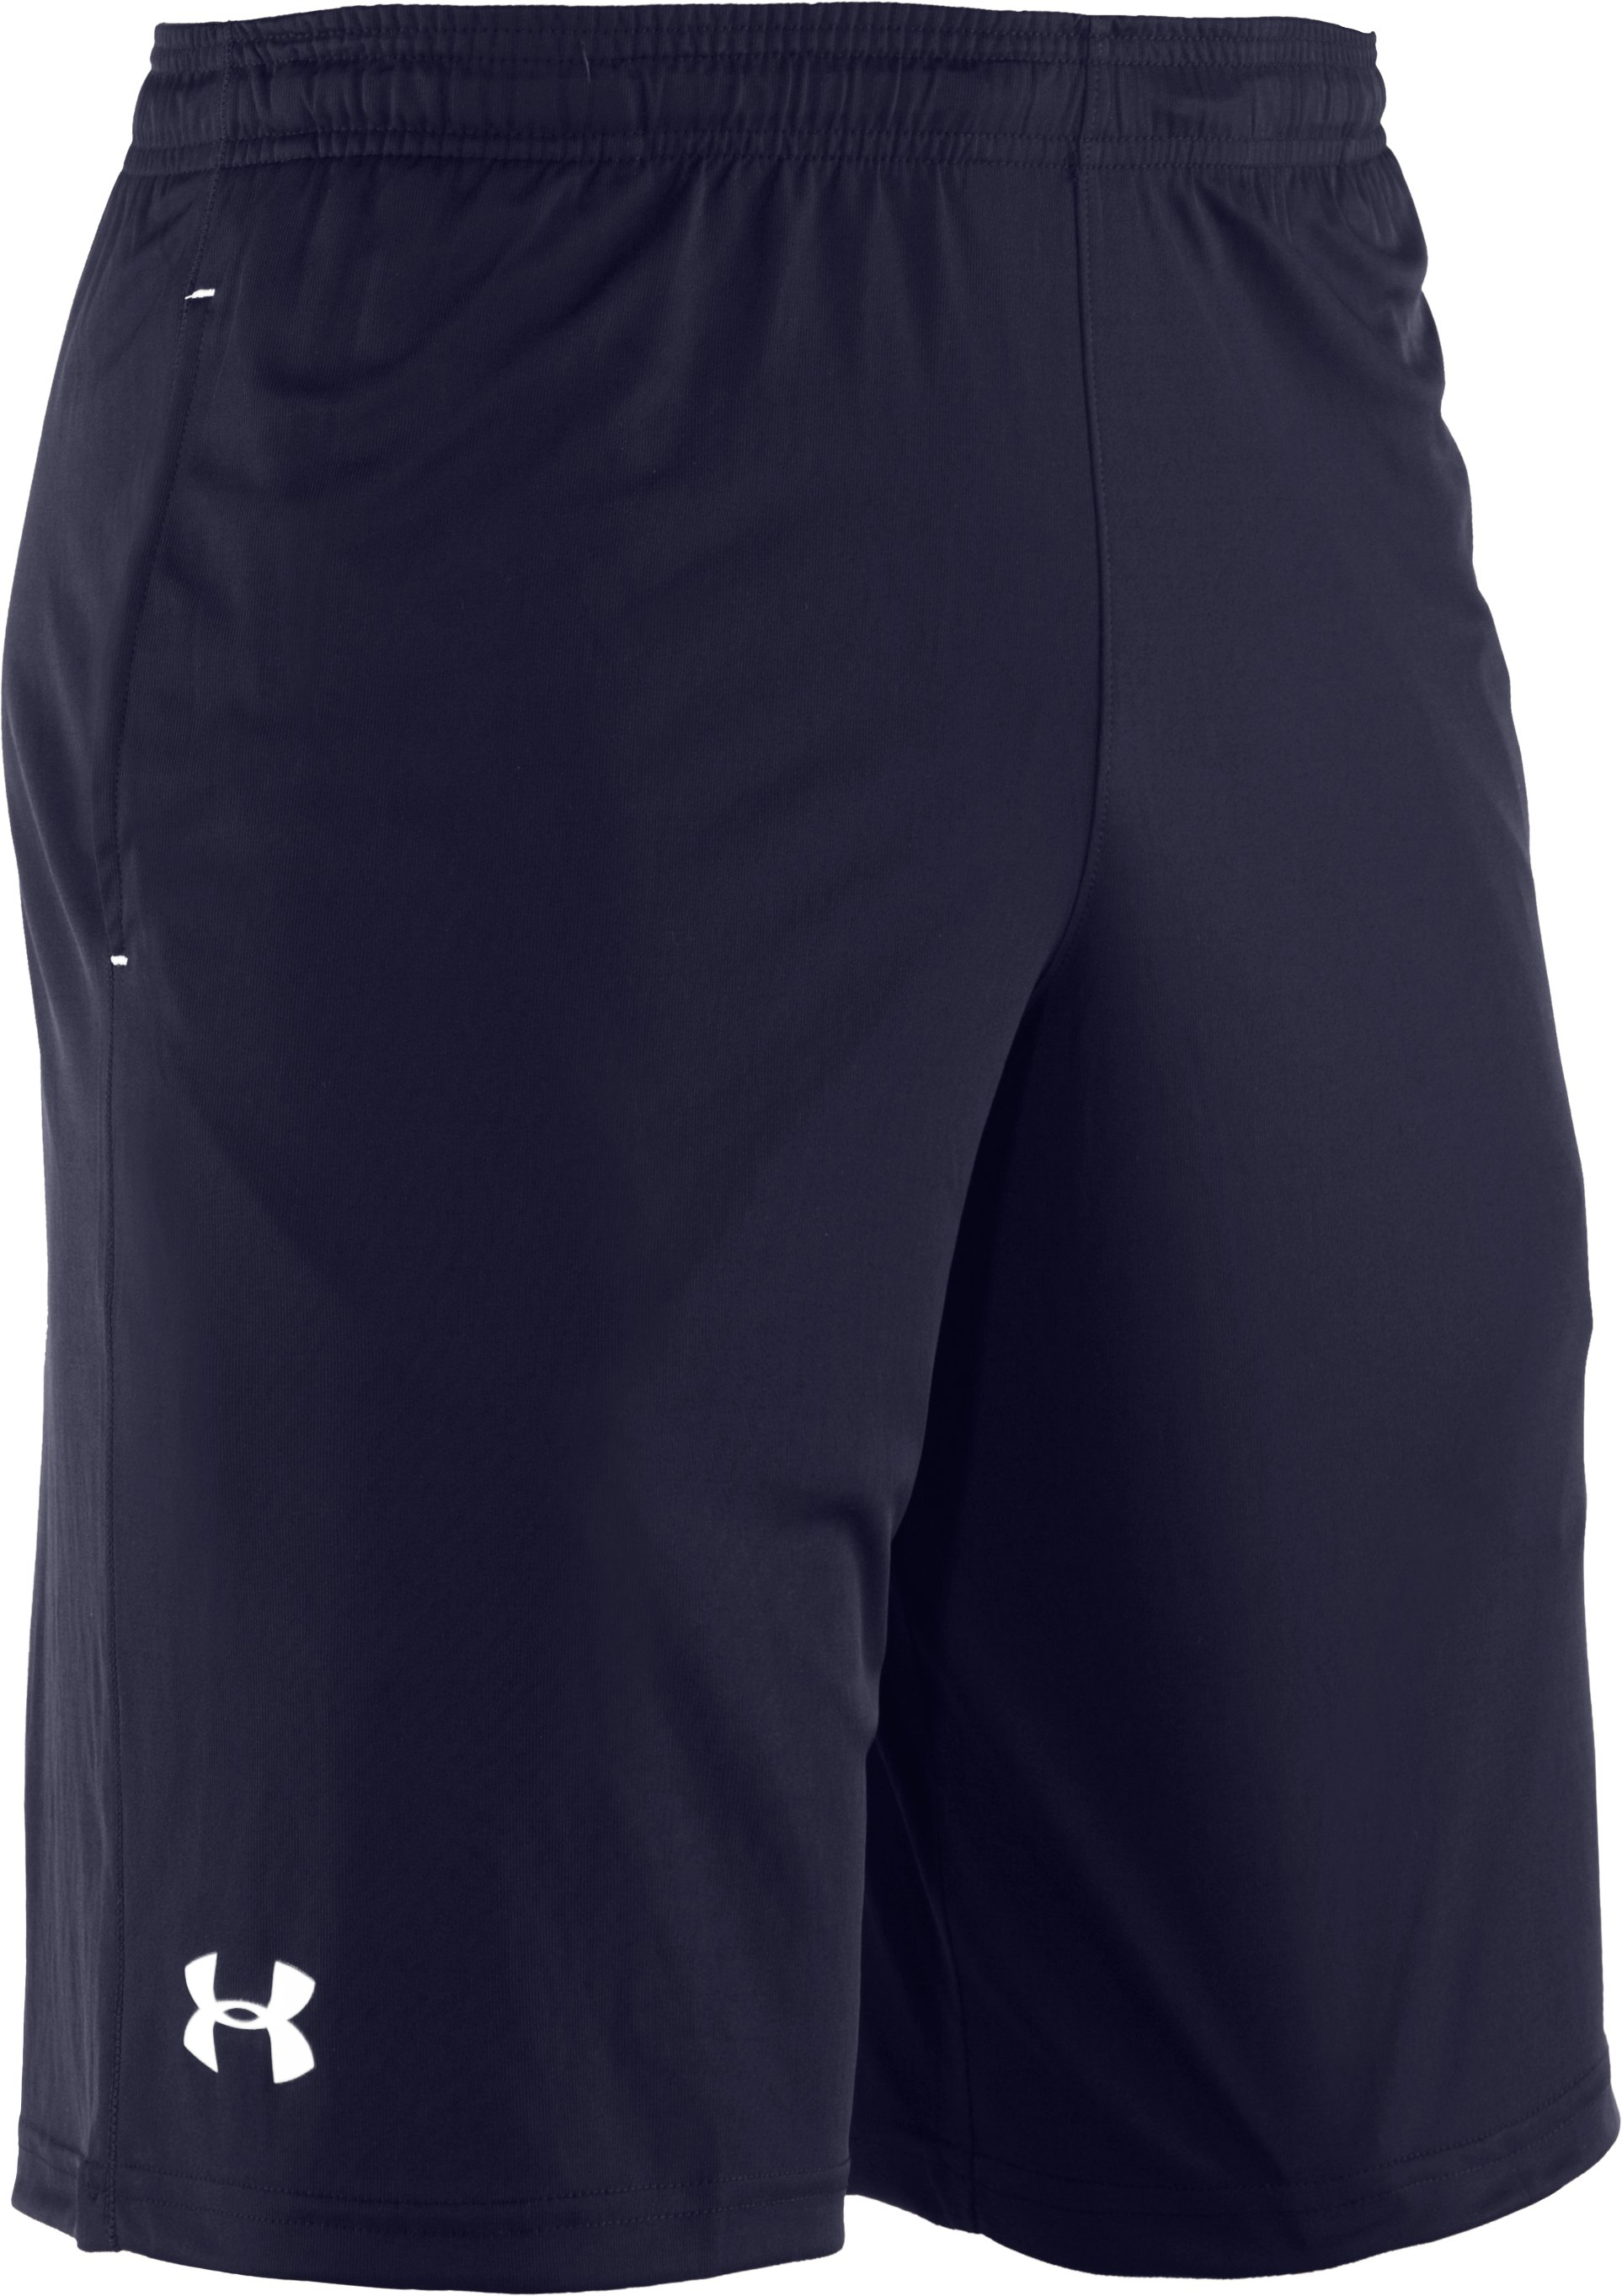 Men's UA Micro Solid Shorts, Midnight Navy, undefined